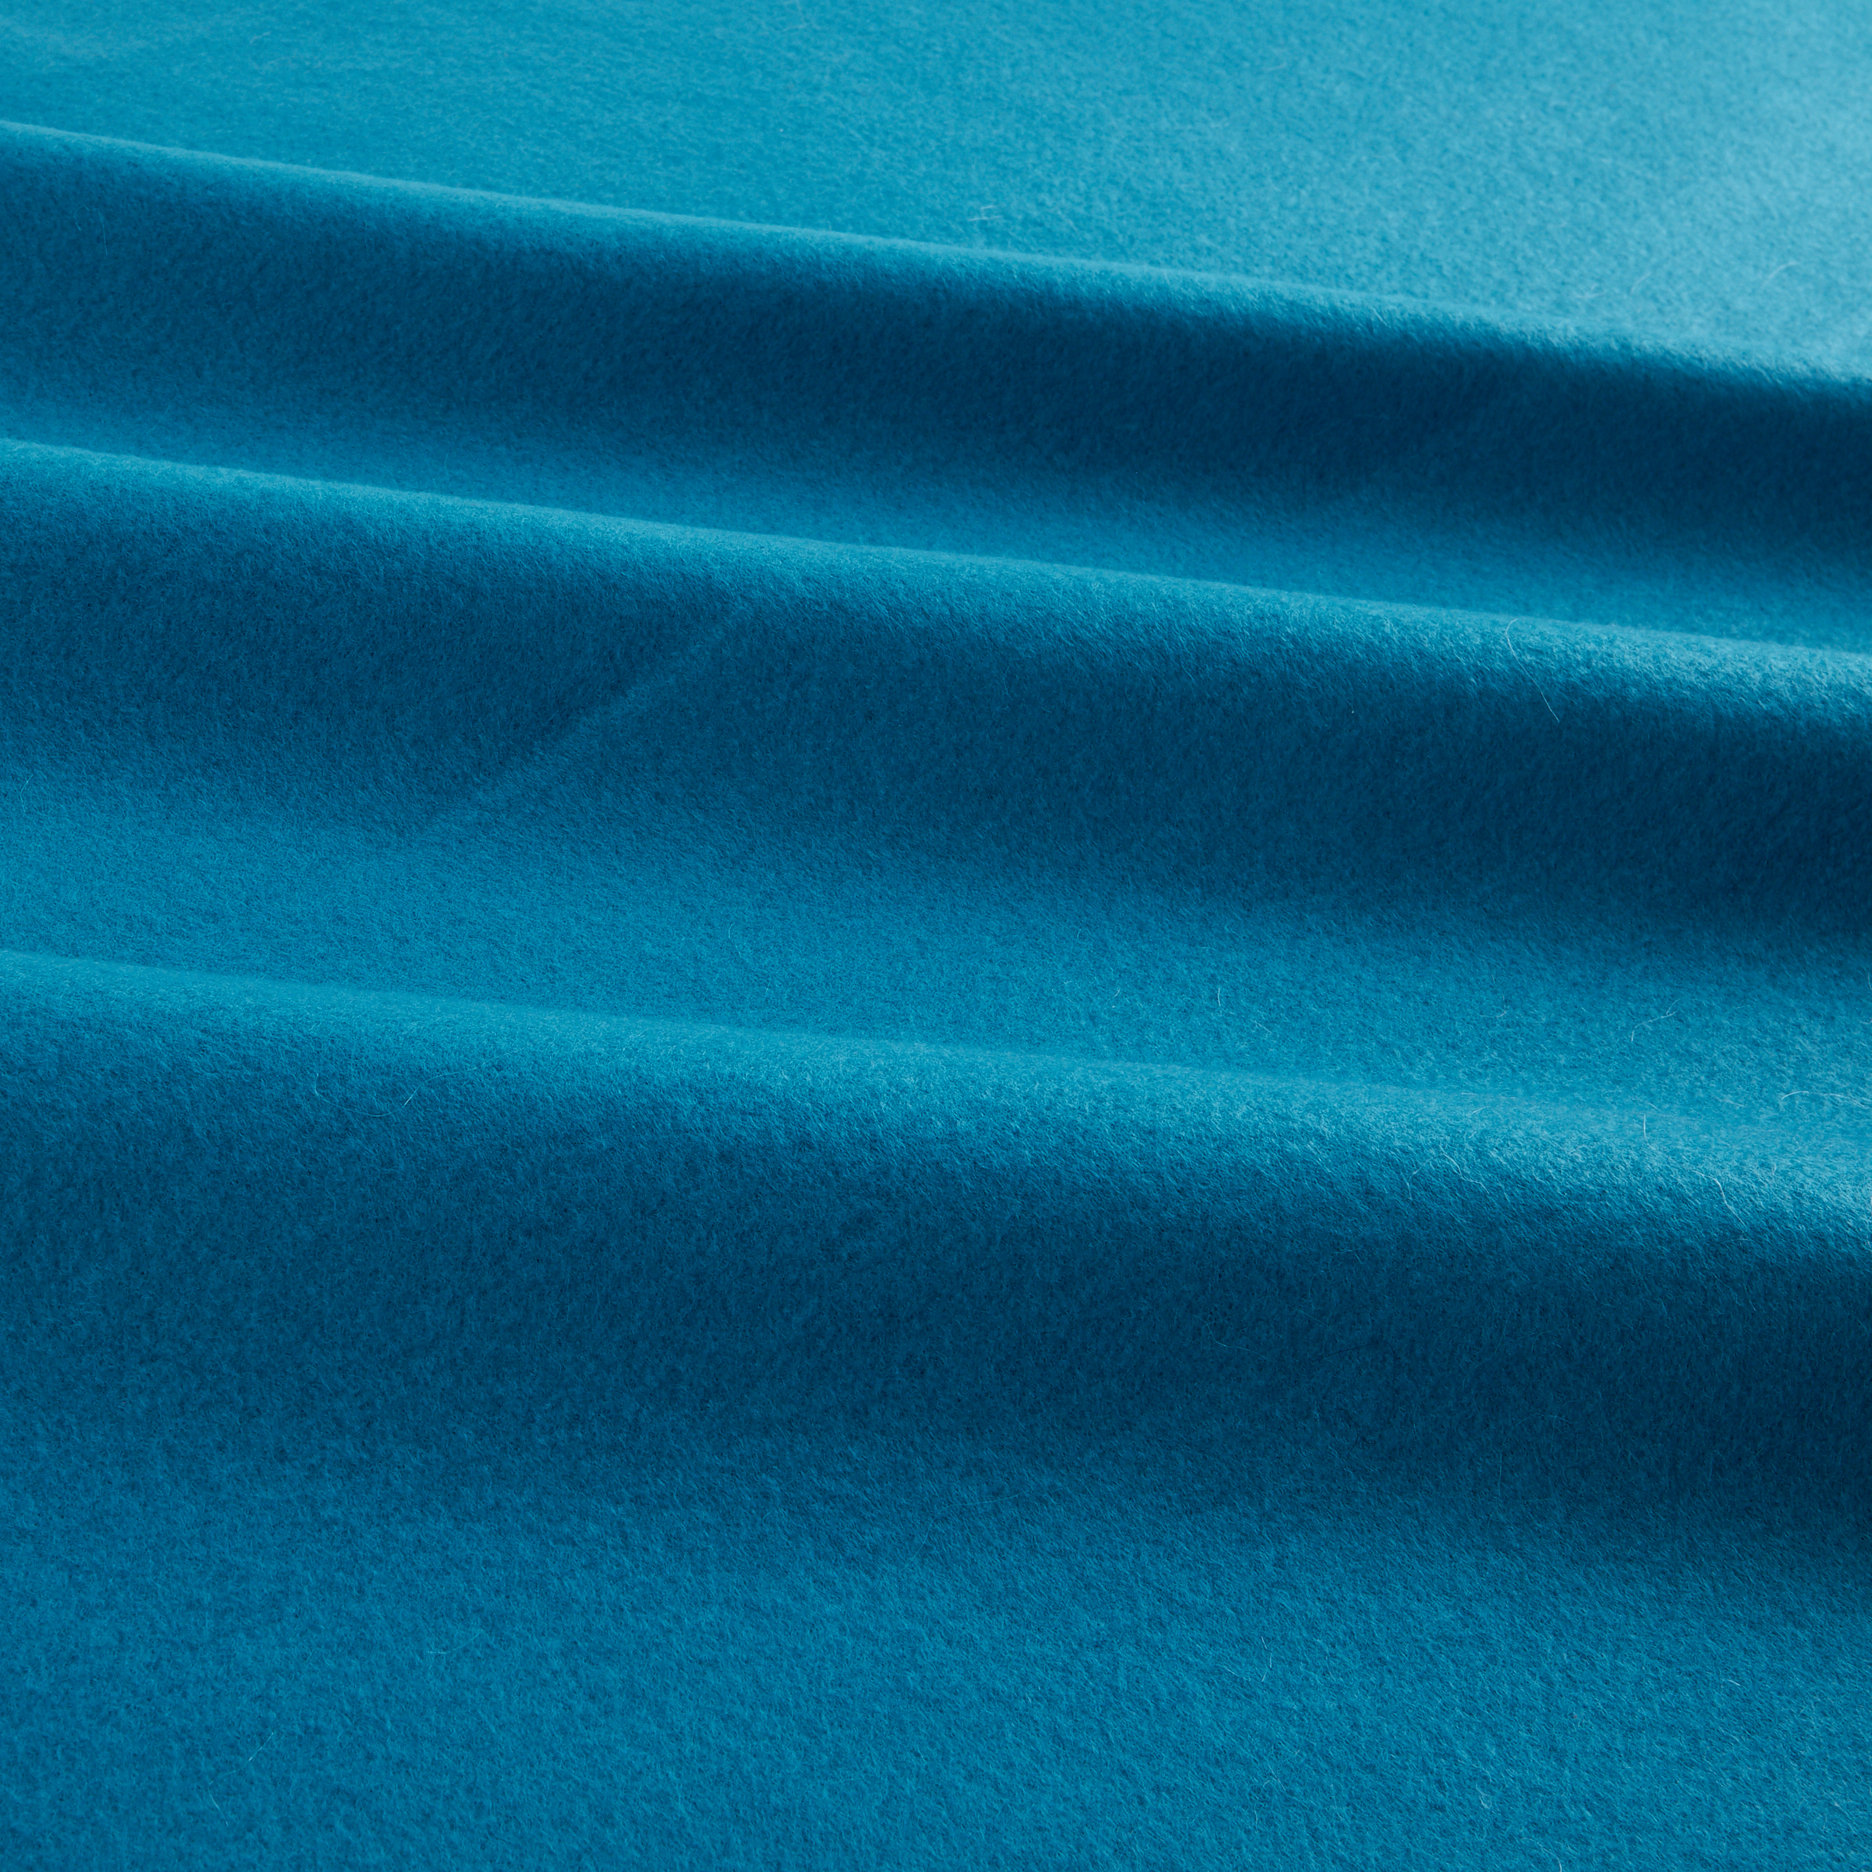 Polar Fleece Solid Turquoise Fabric by Newcastle in USA